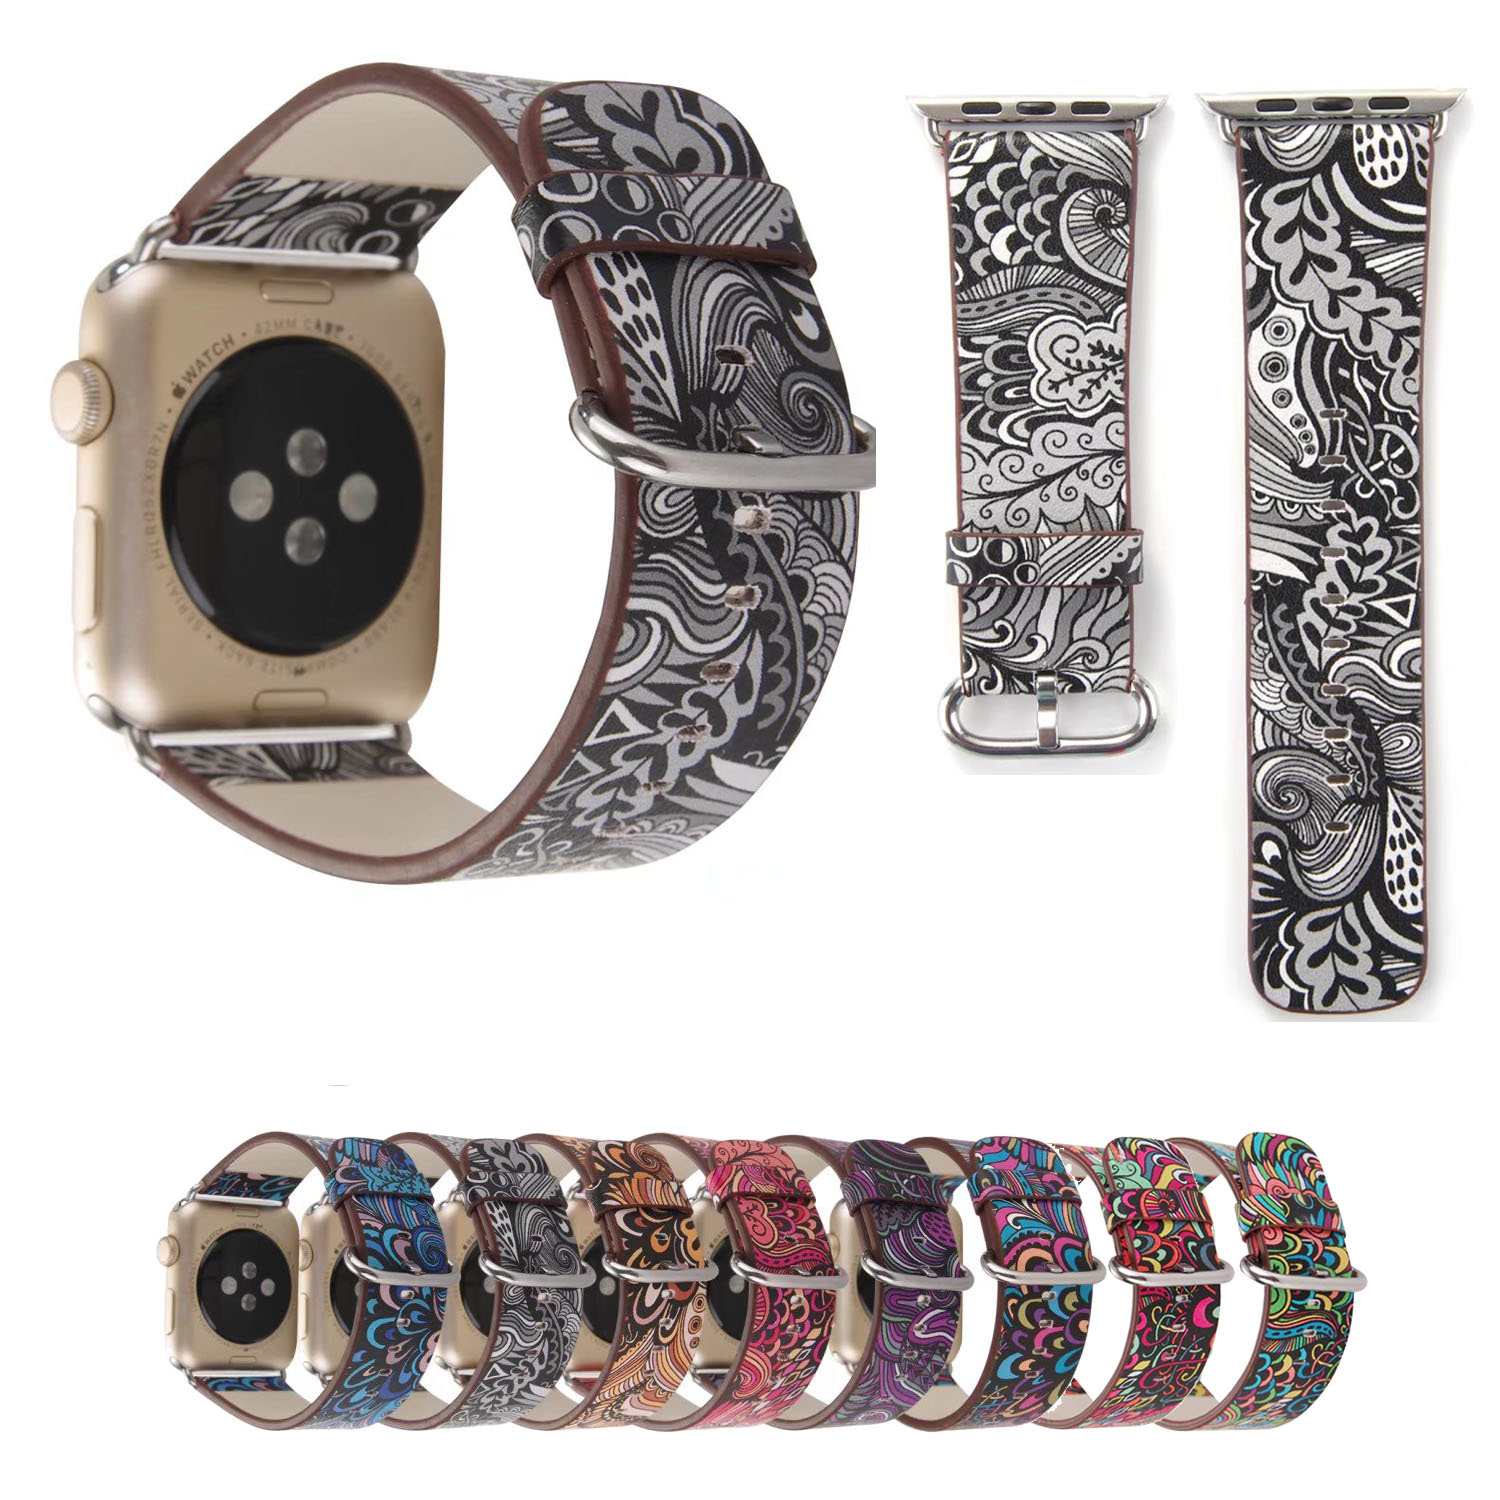 Floral Bands: Colorful Retro Floral Watch Strap For Apple Watch Band